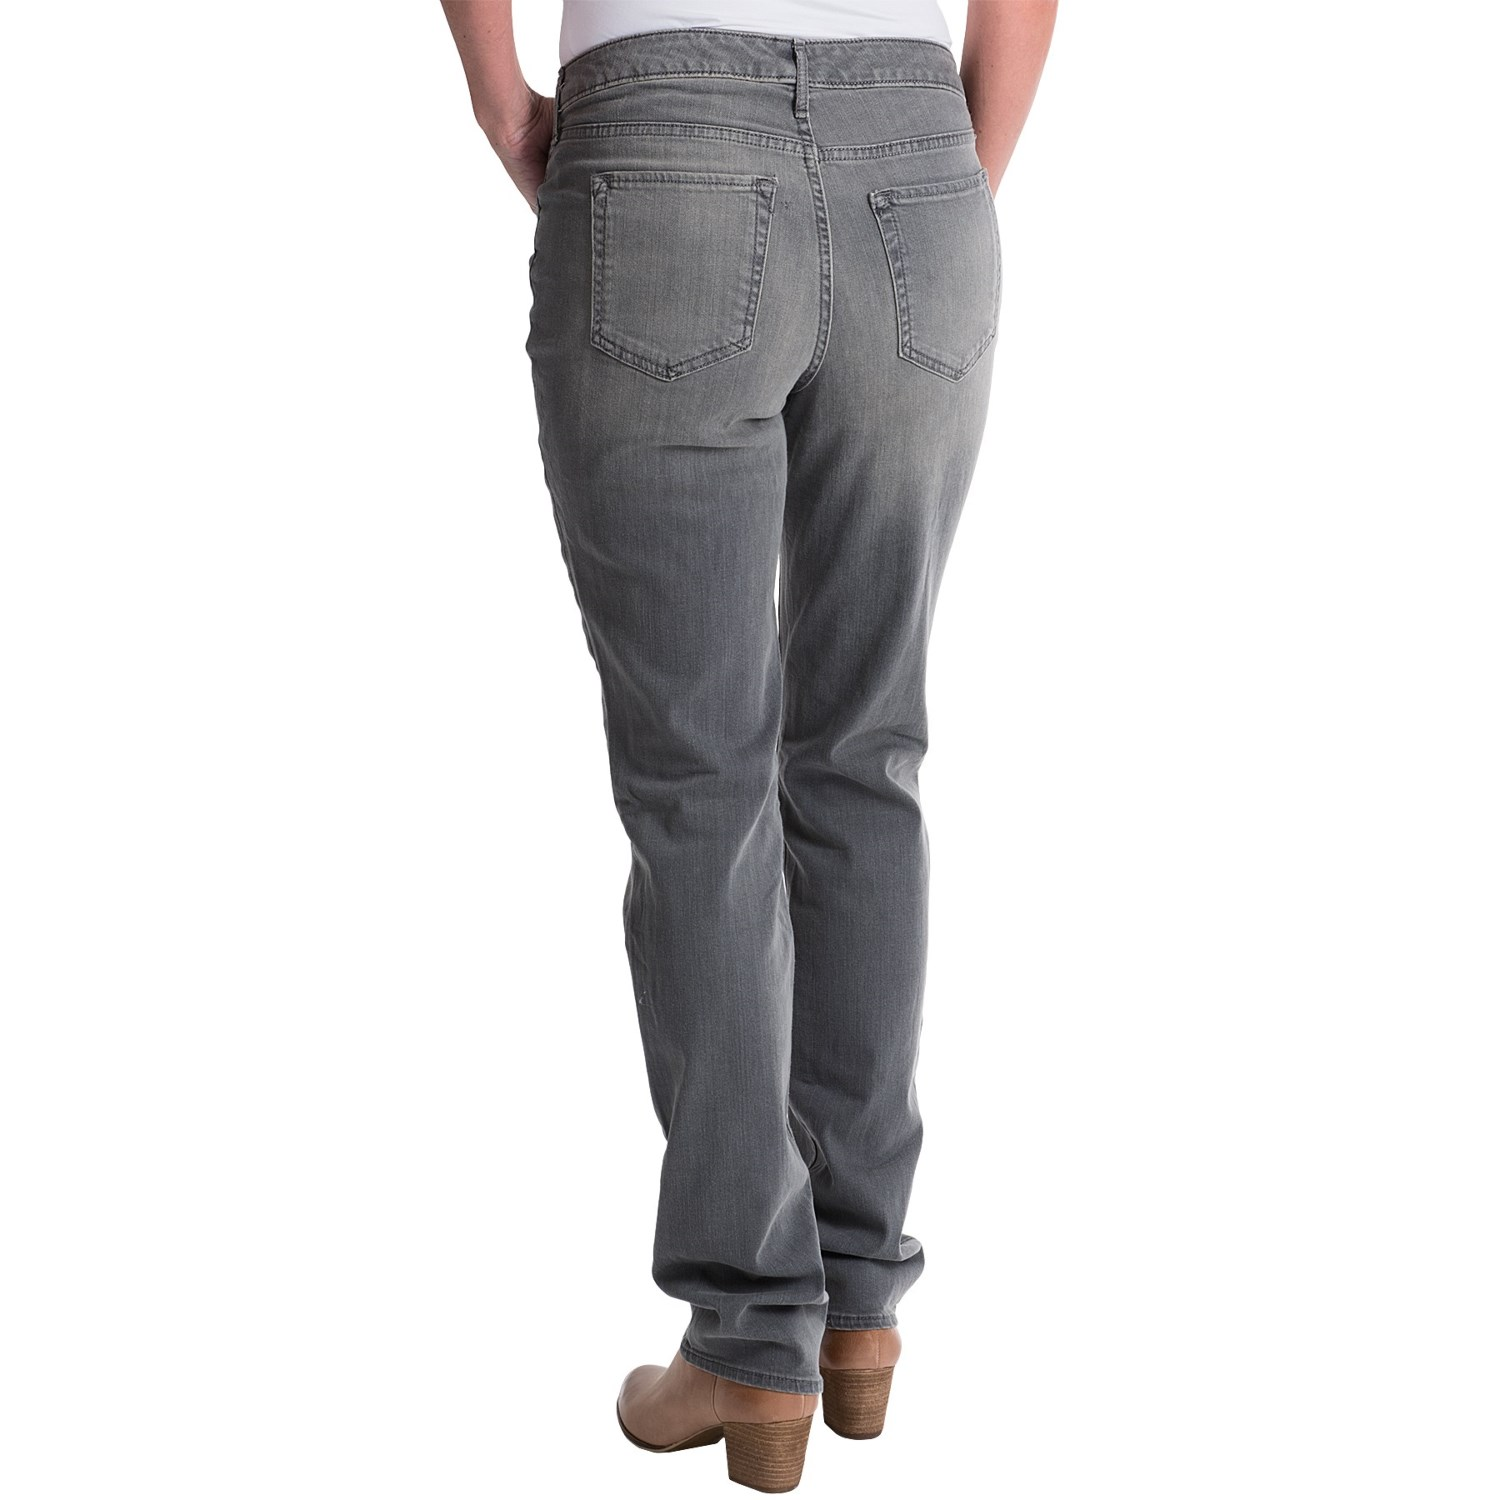 Whether you're heading into the office or relaxing at home, a pair of stretch denim jeans provides lasting comfort and style. From extra slim and skinny to classic boot and loose straight, we have the perfect fit for your styling needs. Our stretch men's jeans look fashionable paired with sweaters, polos, button-ups, graphic tees, henleys and more.